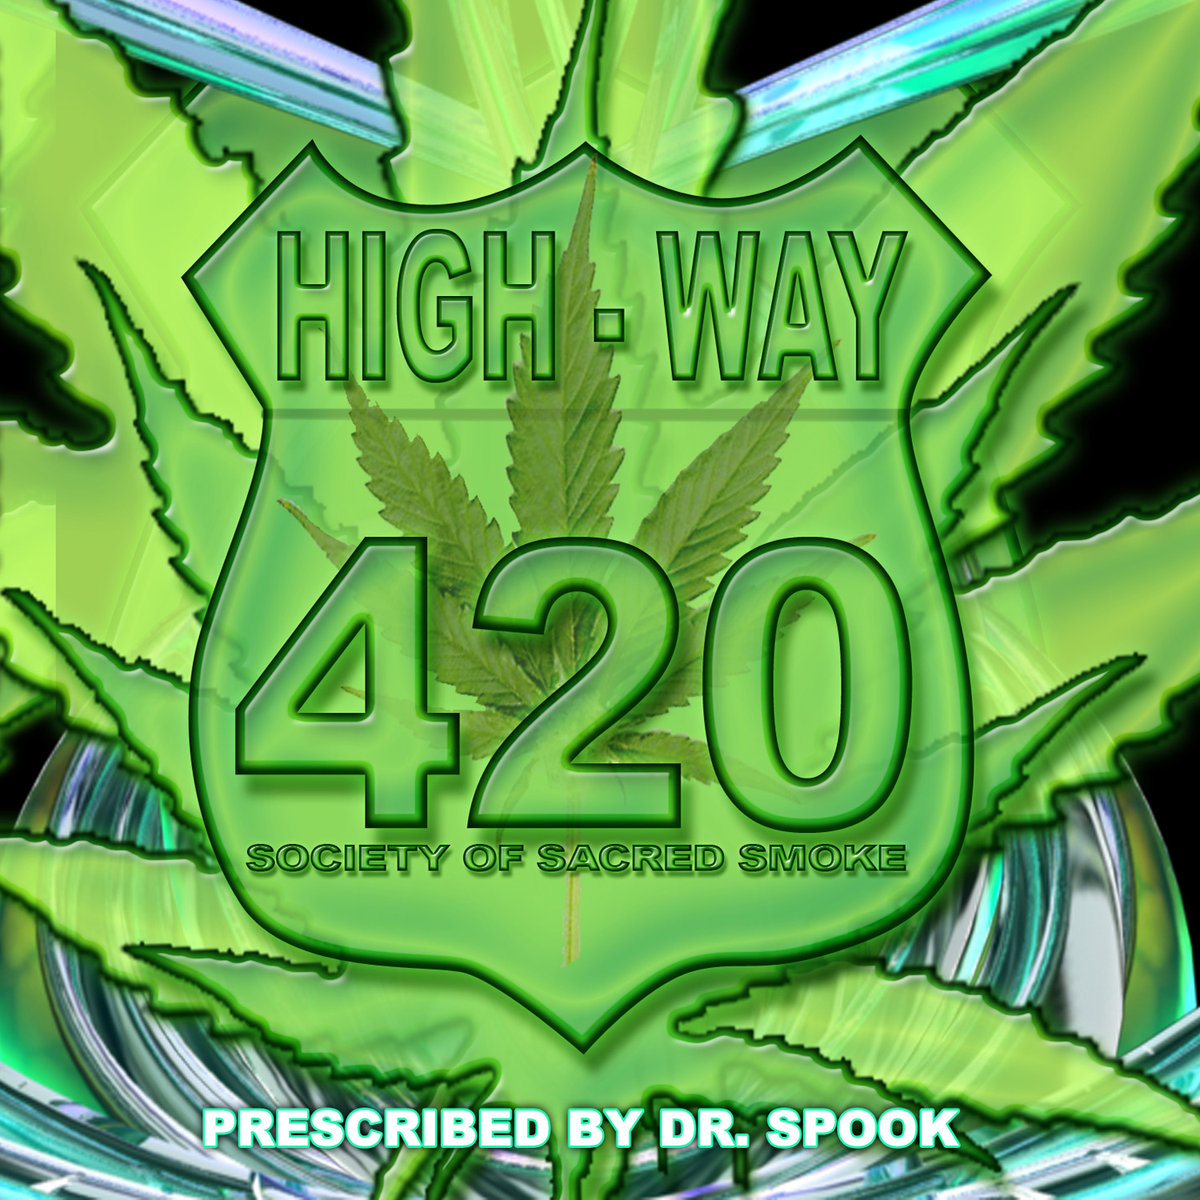 Naked Tourist - Cali Weed @ 'Various Artists - High-Way 420: Society Of Sacred Smoke (Prescribed by Dr. Spook)' album (electronic, goa)